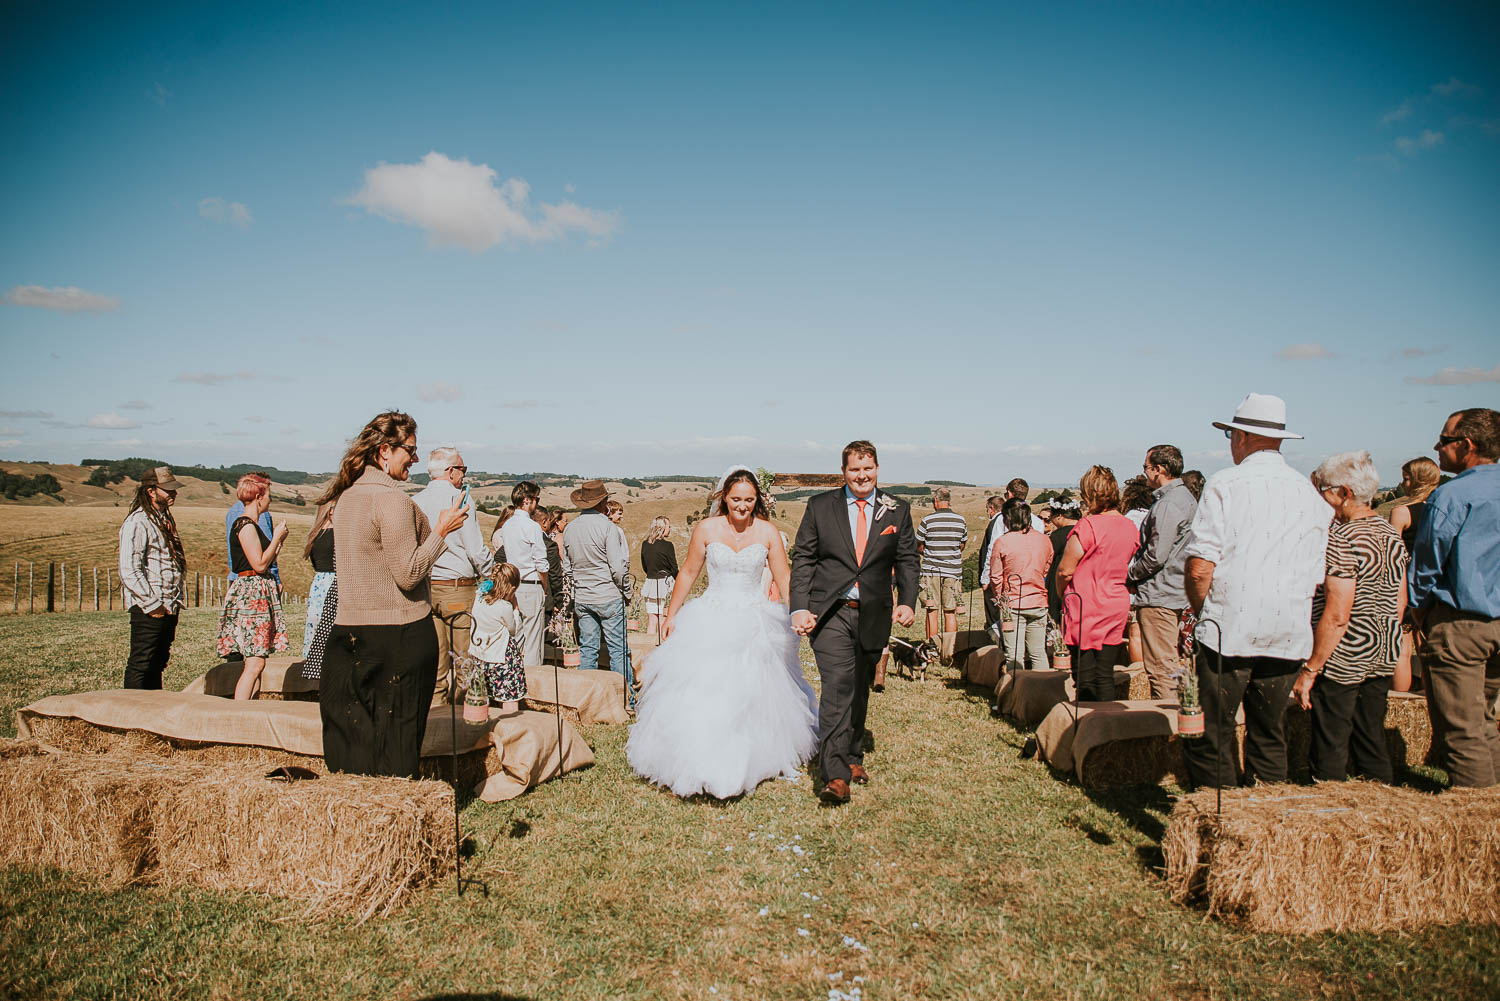 james-melinda-auckland-rustic-farm-wedding-50